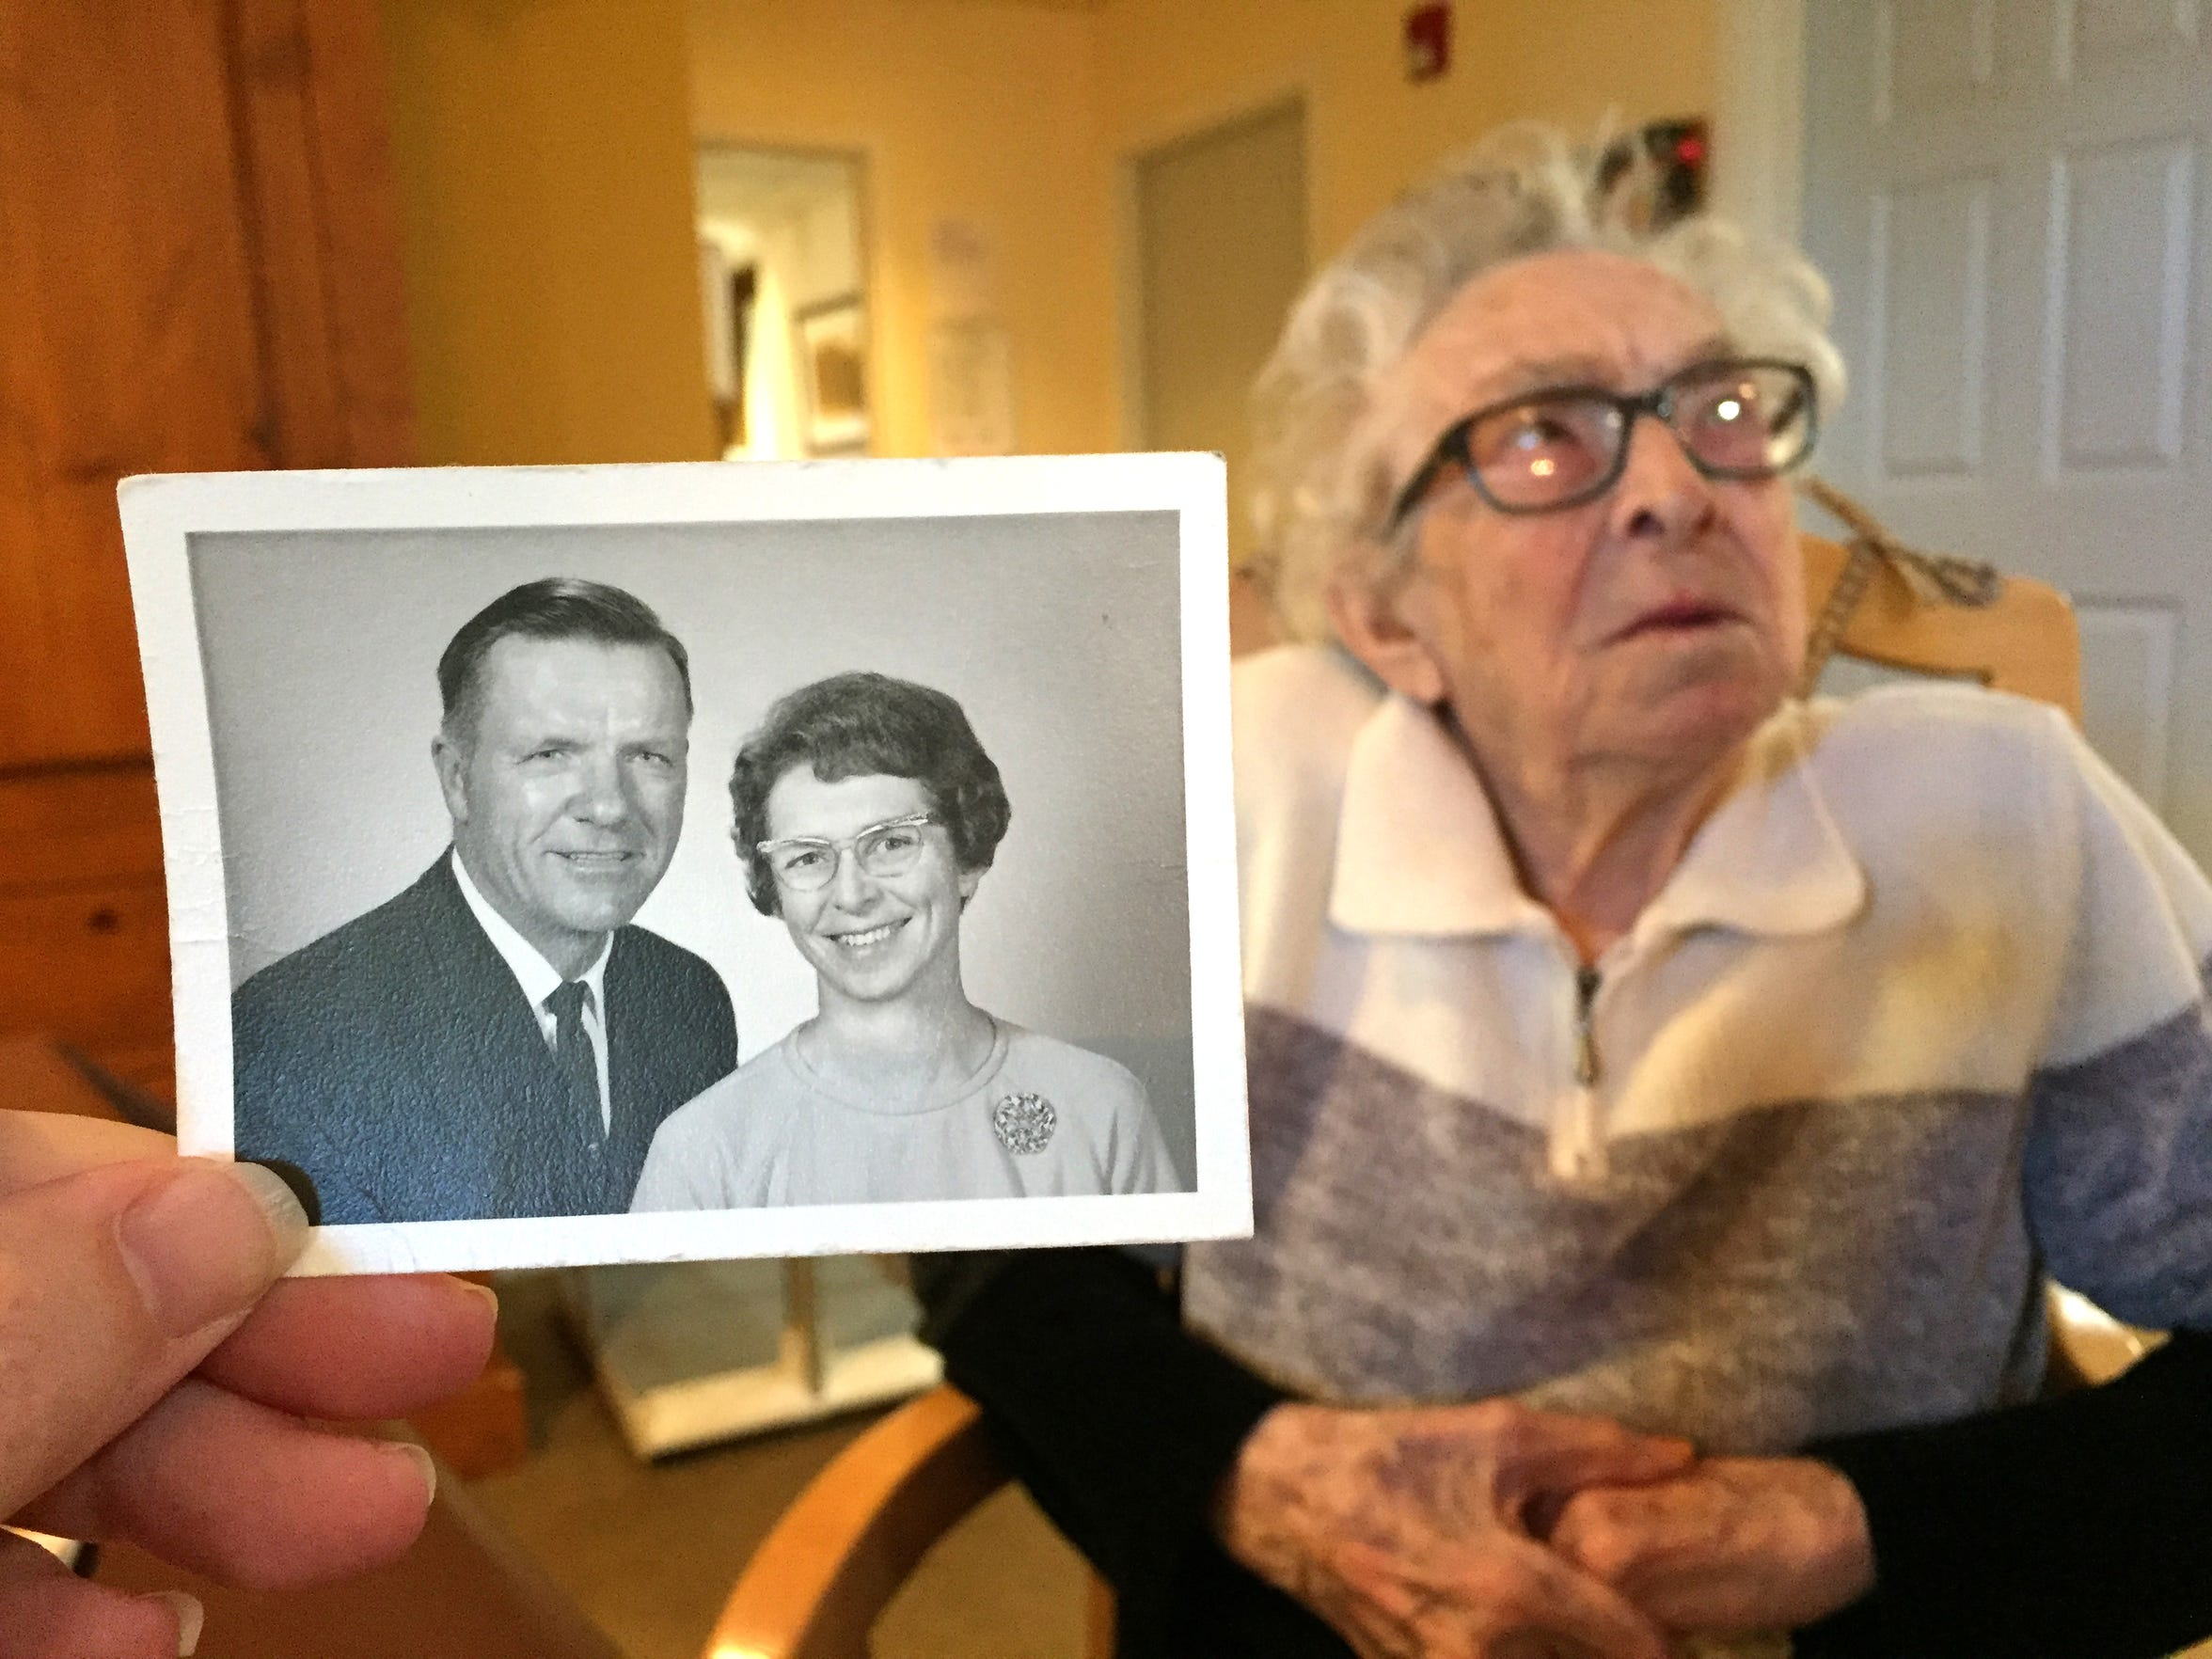 Mary Lincoln, 106, was married for 60 years to Donald Lincoln, who died in 1996.